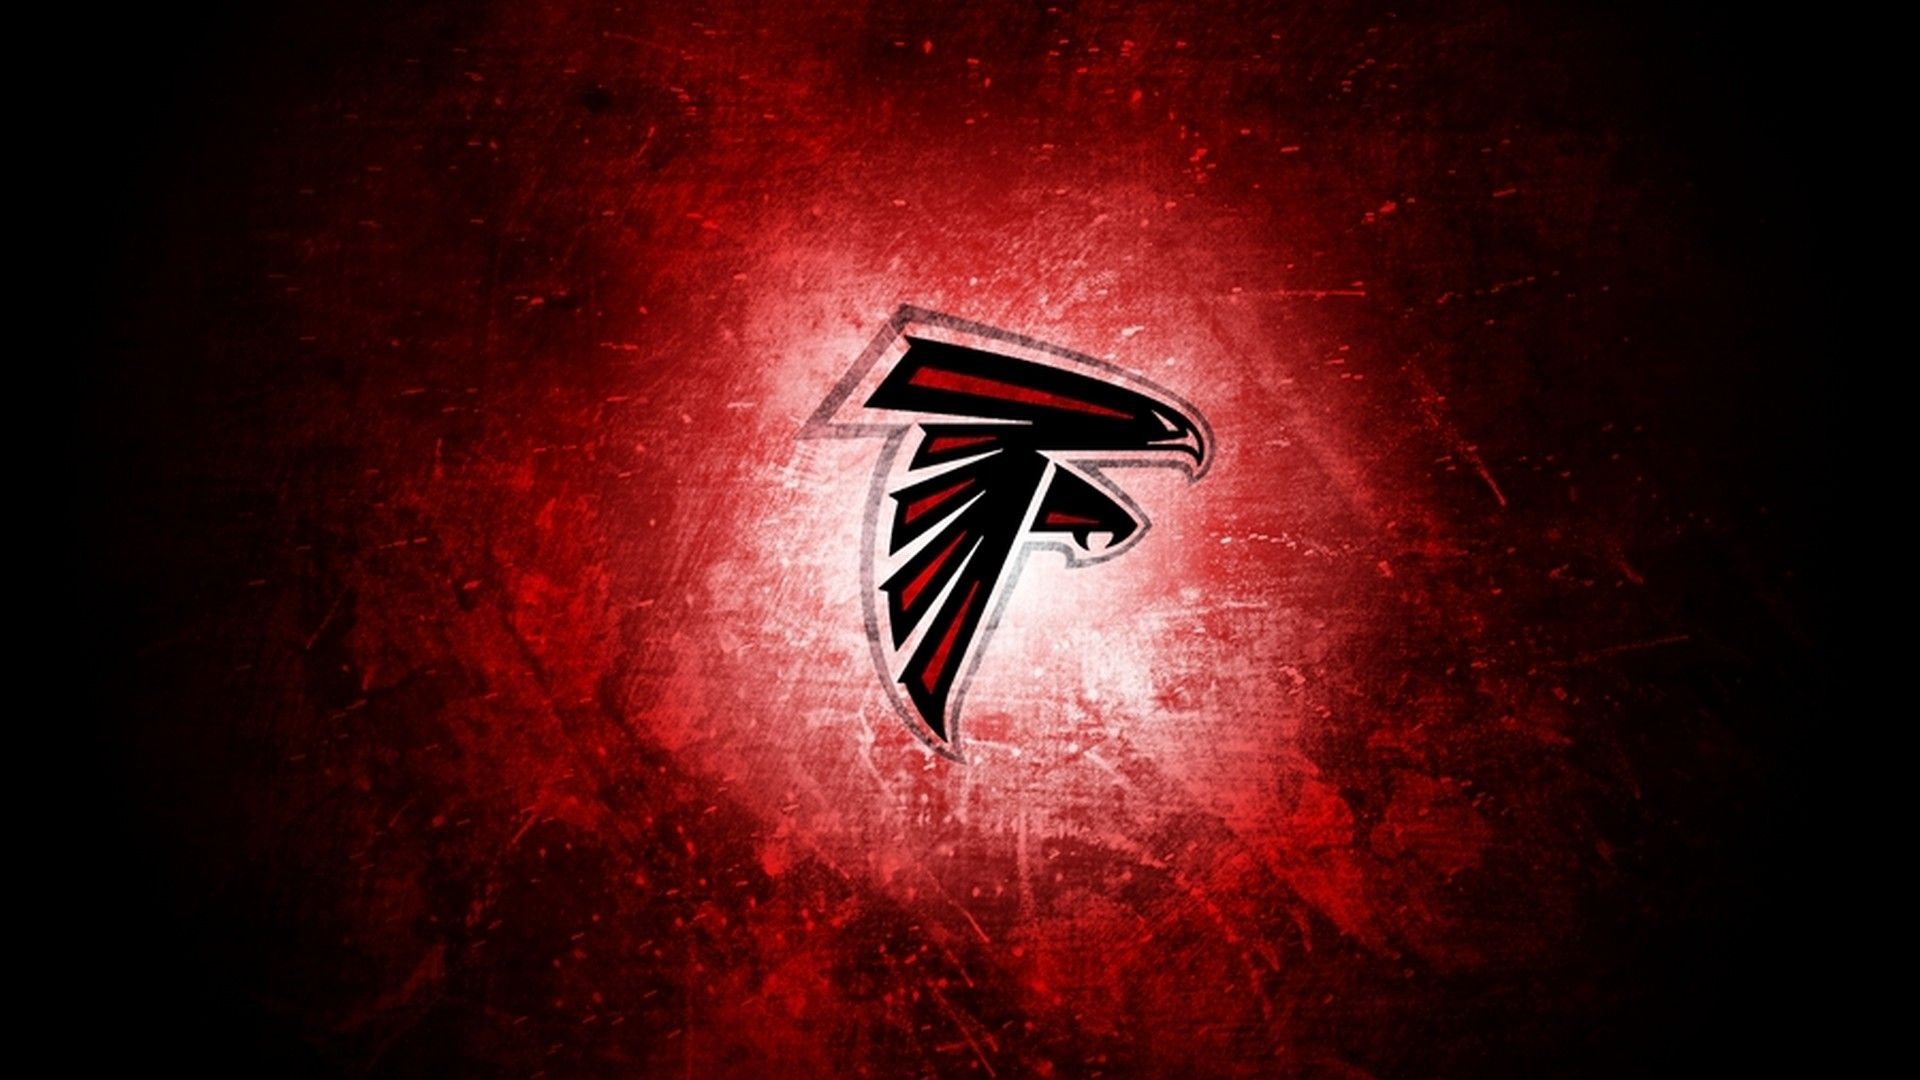 Falcons Iphone Wallpaper: Wallpapers HD Atlanta Falcons